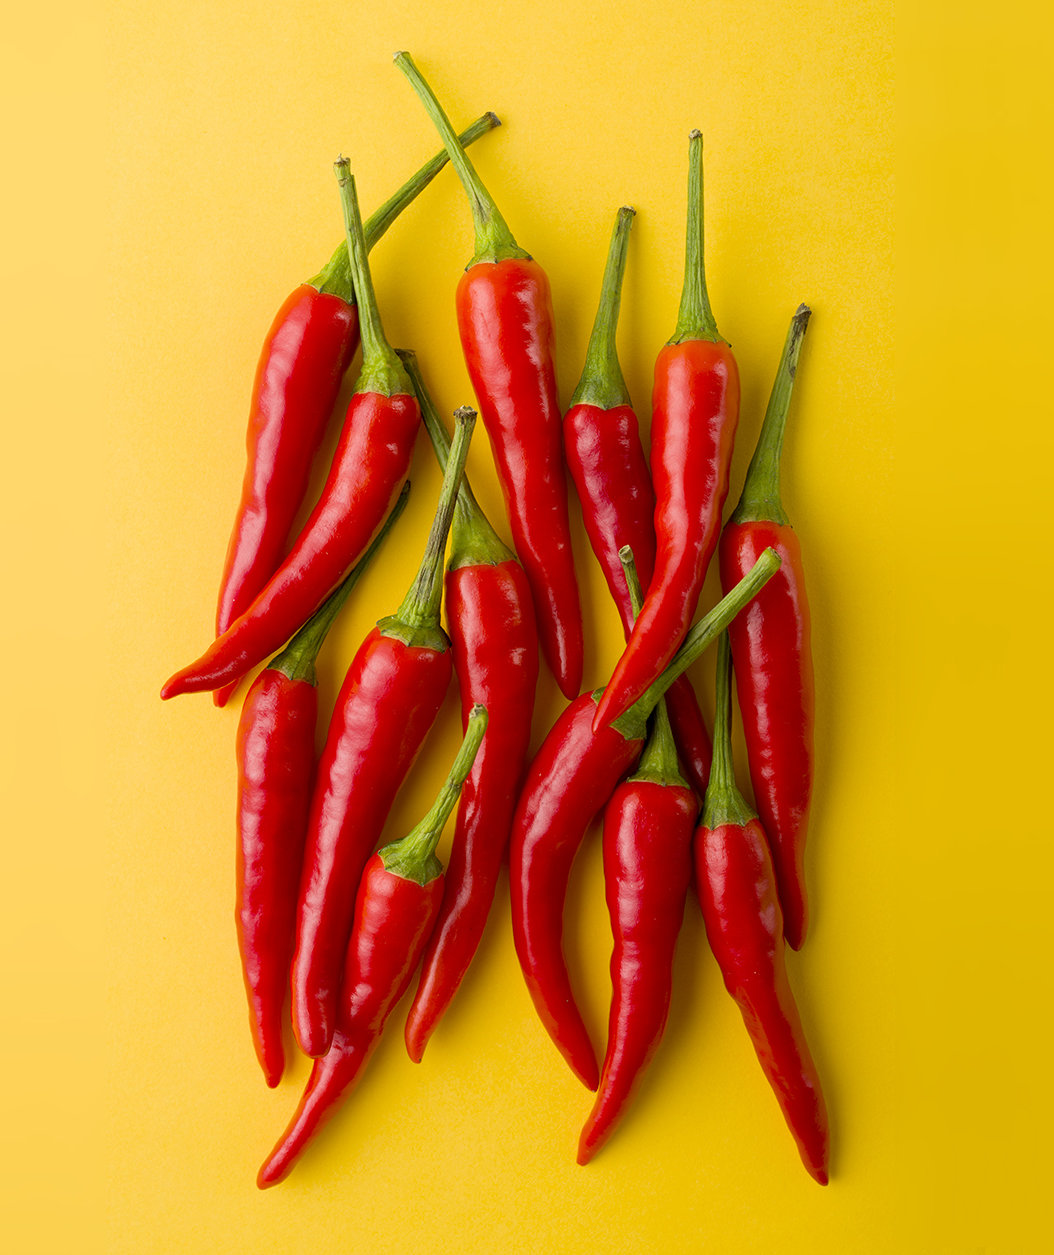 Does Eating Spicy Foods Really Help Beat the Heat?